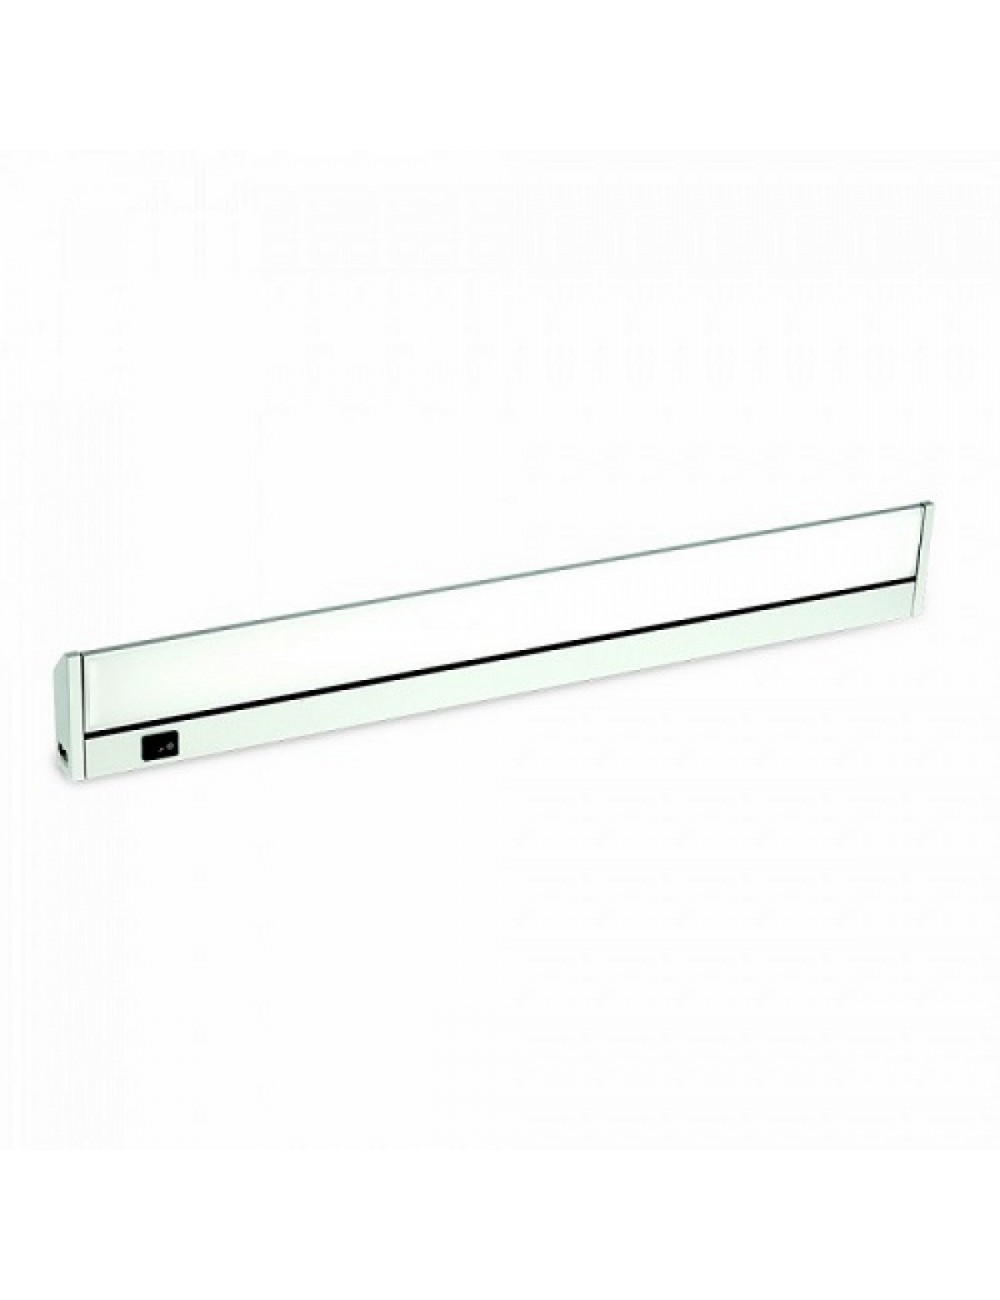 Tubo led plafoniera sottopensile cucina 10w v tac vt 8112 for Tubi luminosi led